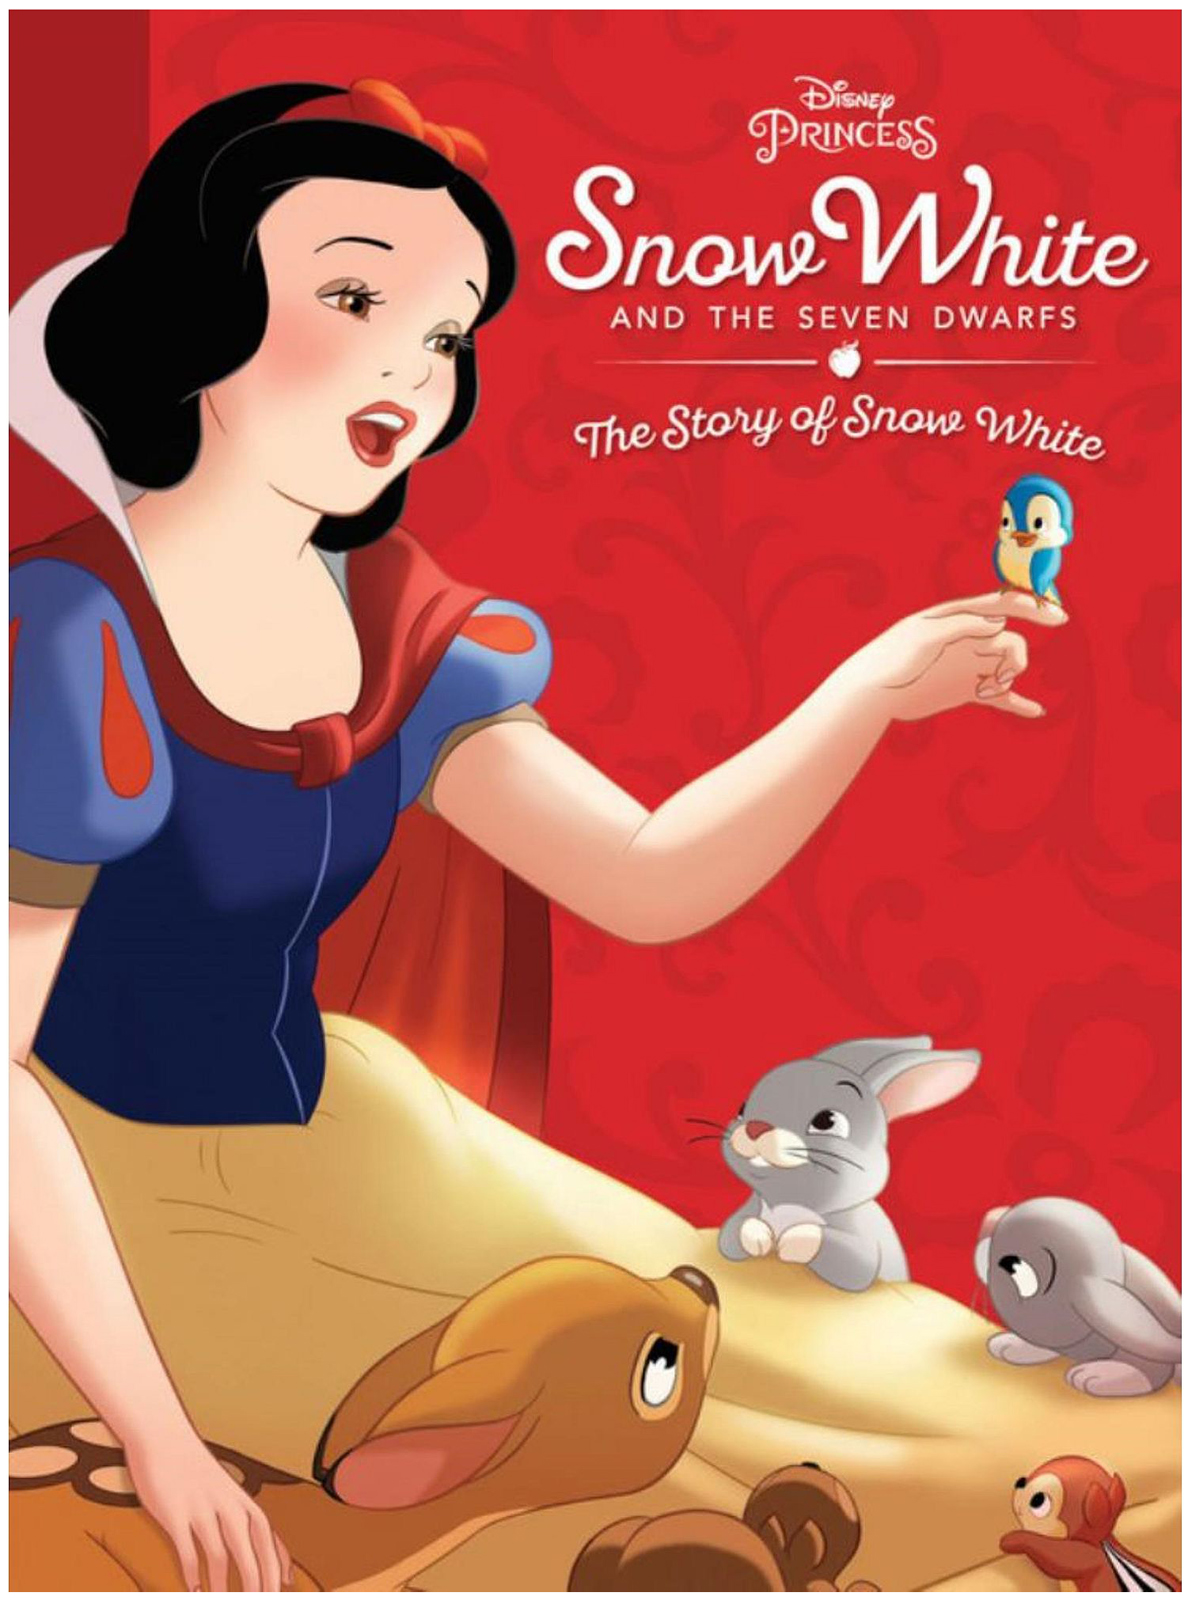 Snow white and the seven dwarfs story  adult pussy